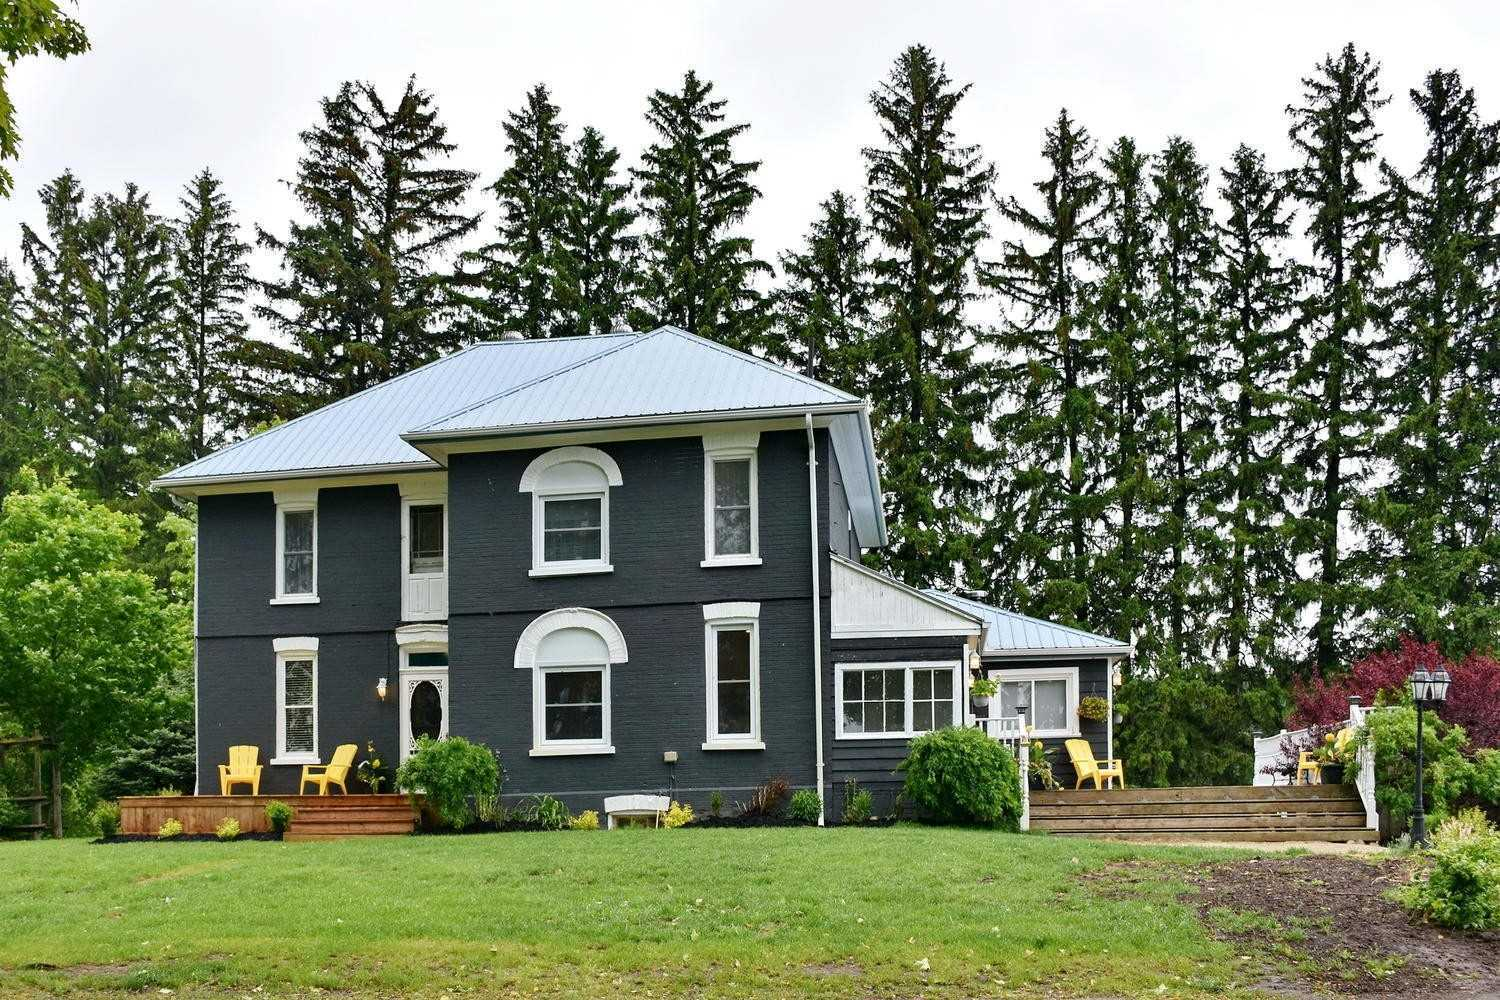 Spacious 1905 Updated Brick Farmhouse. Great Family Home With 4 Bedrooms & 2 Full Baths, Fabulous Country Kitchen, Bank Barn 56'X95', Pole Barn Attached 56'X50', Steel Shed/Garage 48'X21', In-Ground Salt Water Pool. All On 2.5 Acres. Majestic Maples Line The Laneway That Leads To Beautifully Renovated House With Lots Of Country Charm. Surrounded By Views Of Creemore Hills & Farmland. Delightful Village Of Creemore Is Minutes Away